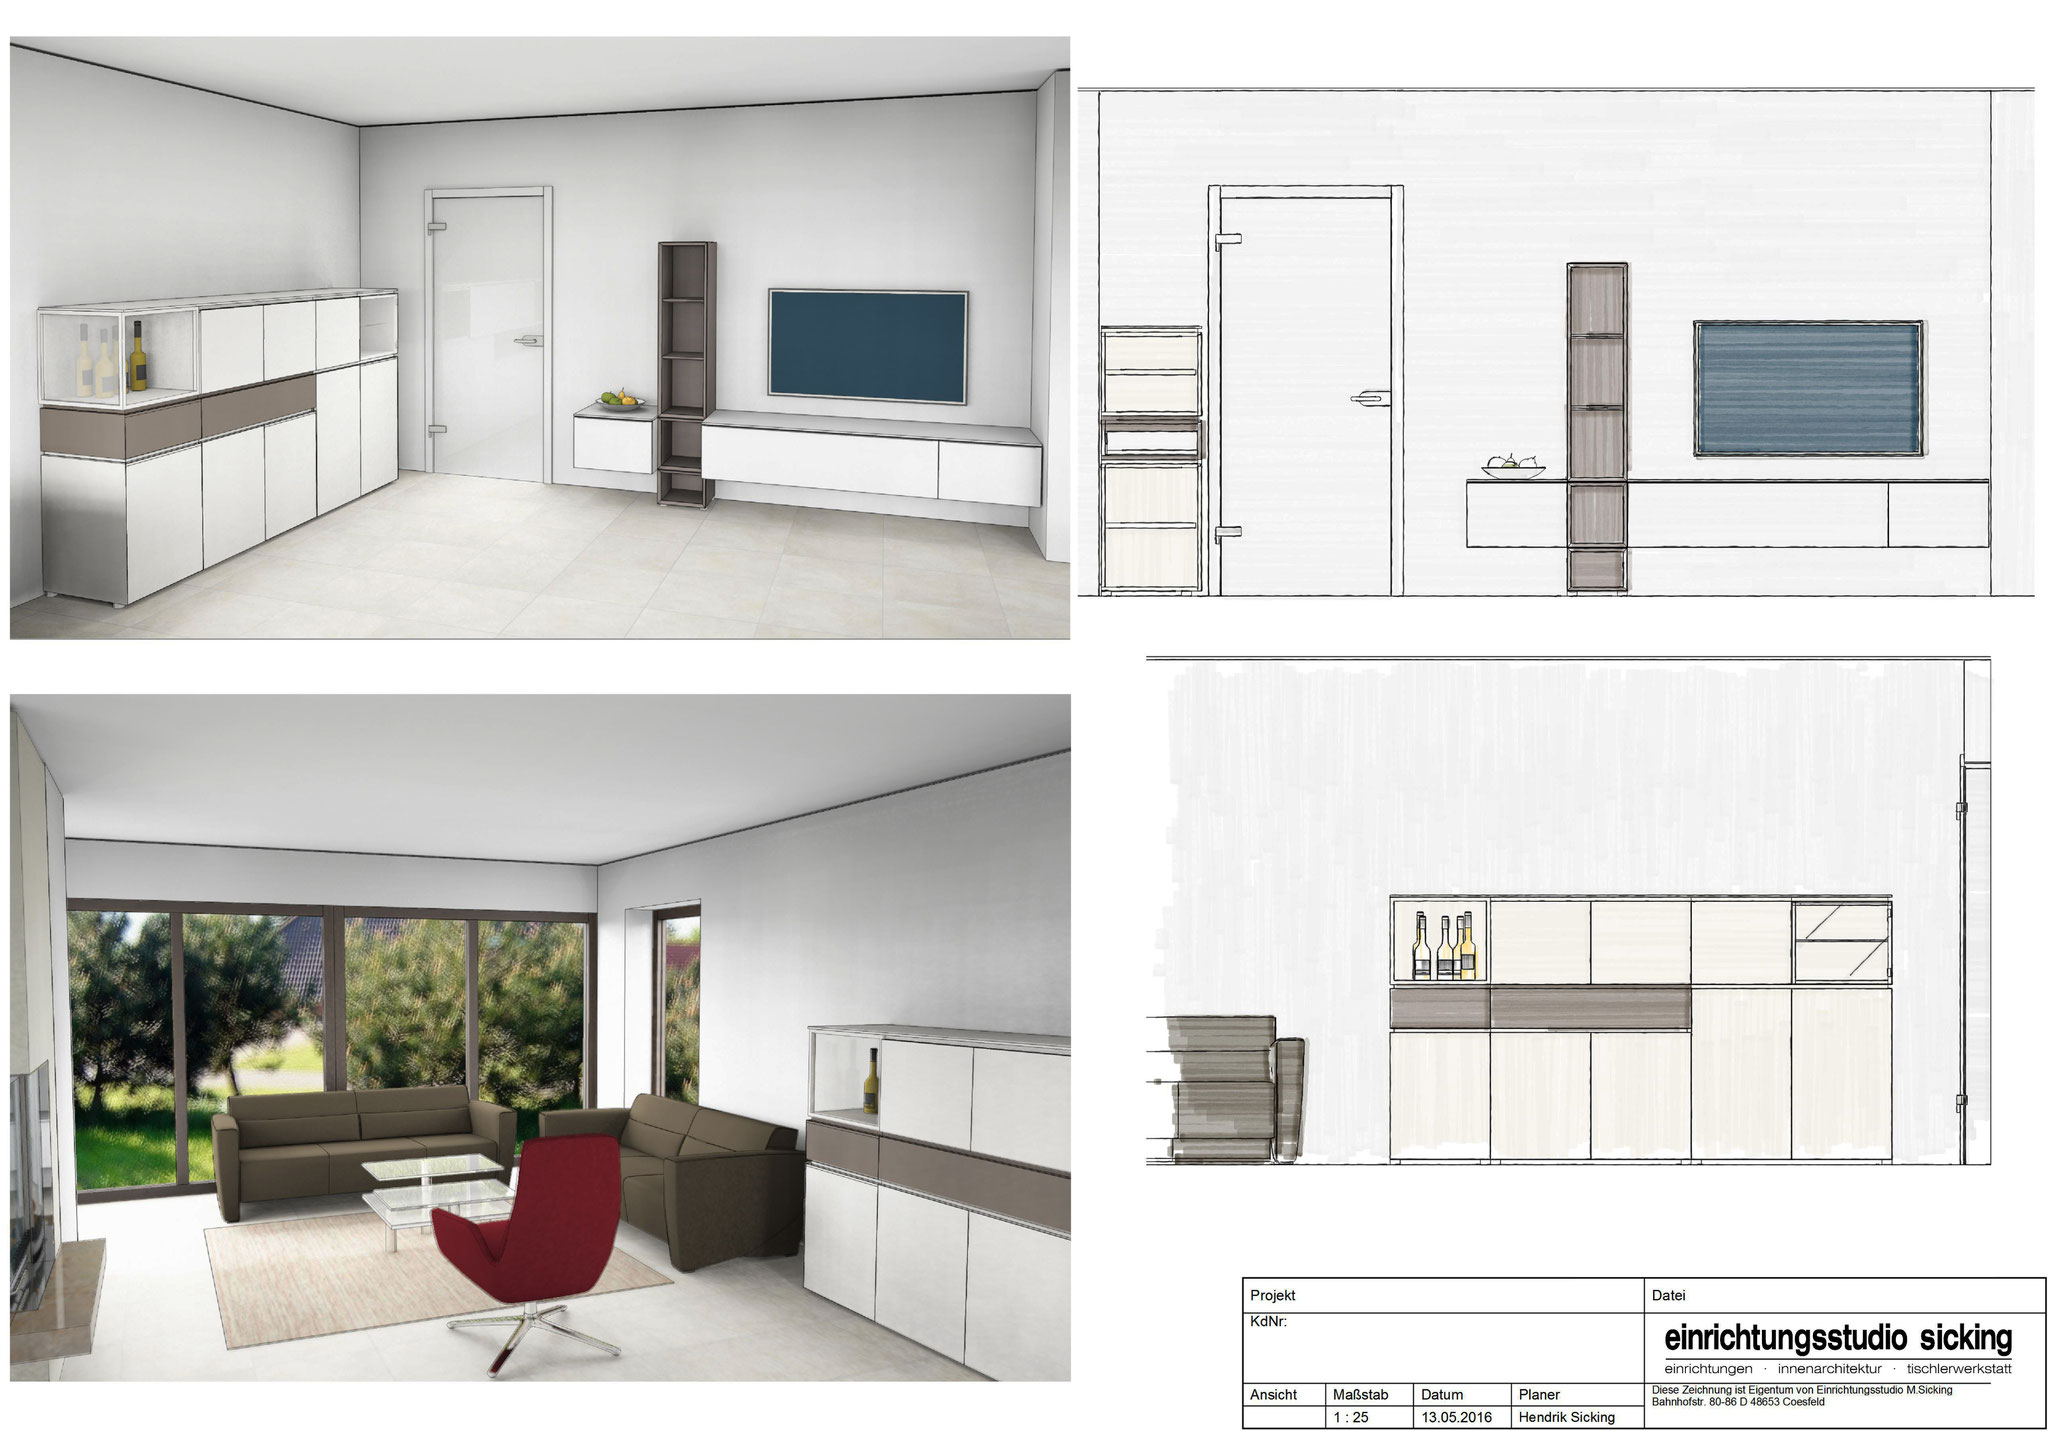 Innenarchitektur Qualifikationen innenarchitektur einrichtungsstudio sicking coesfeld